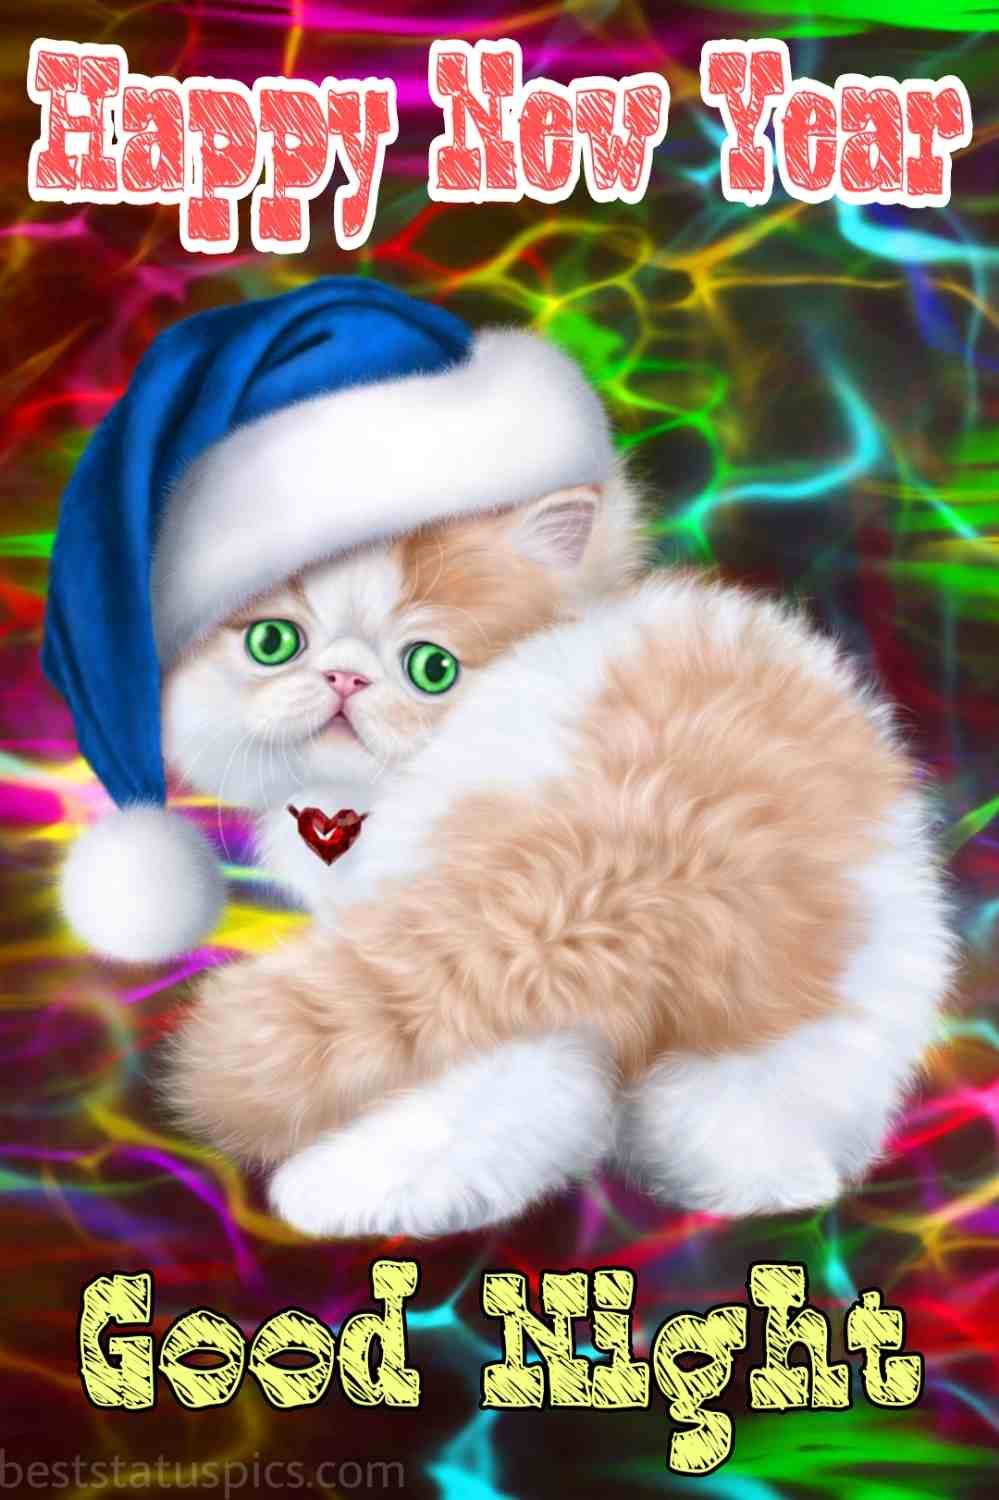 Happy new year 2022 and Good night HD images with a cat for girlfriend and love